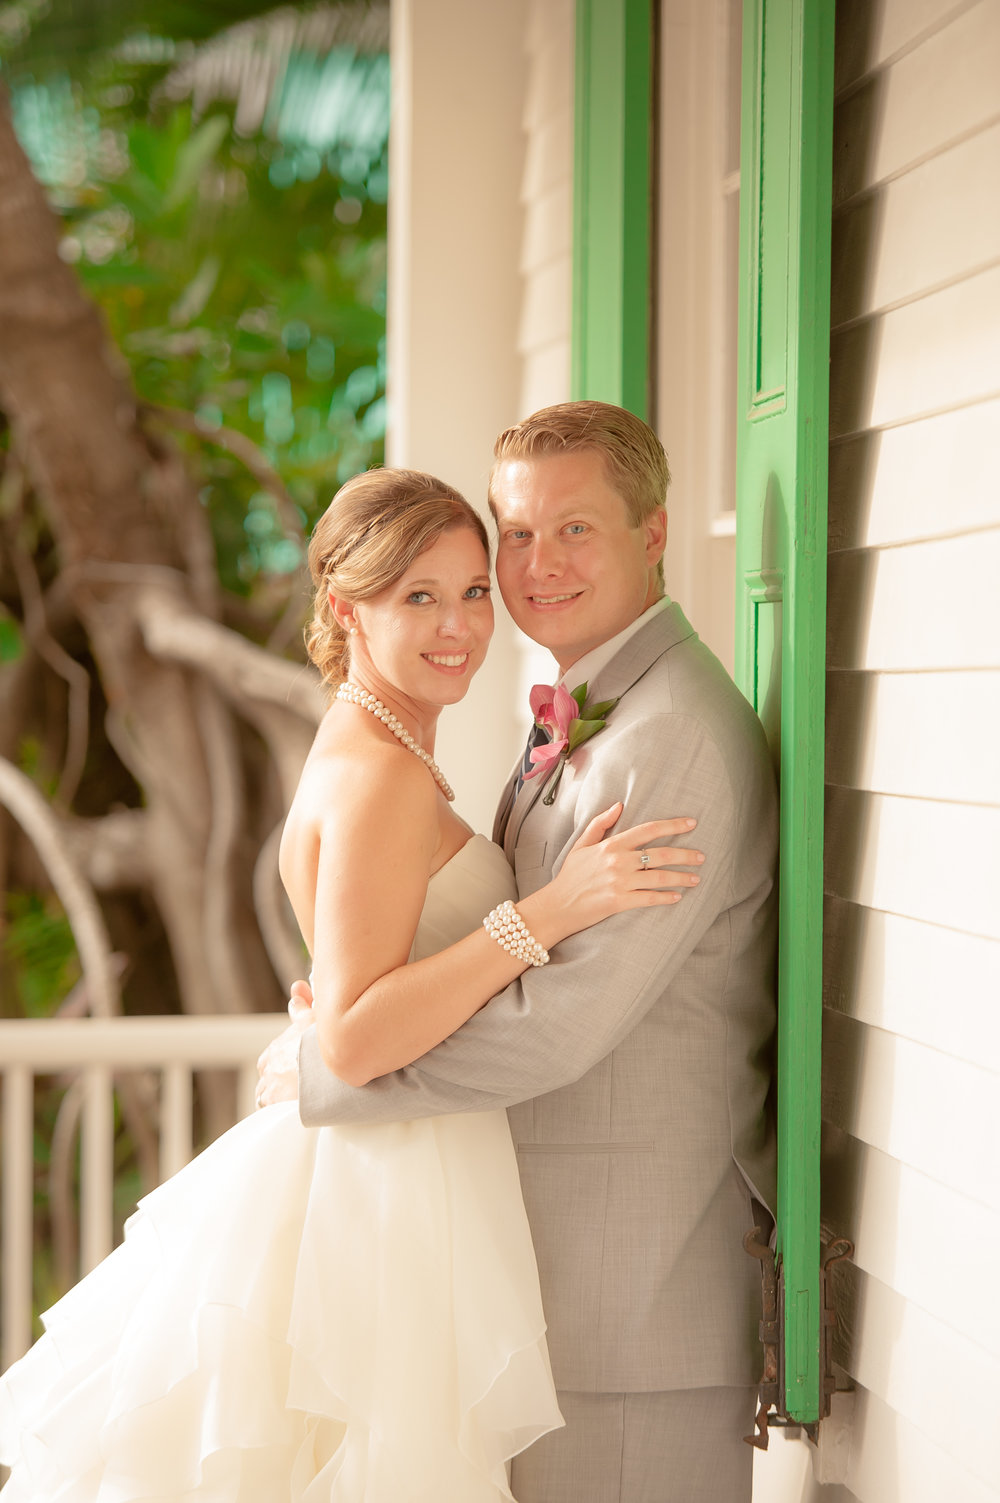 Amanda+James_Audubon House Key West Wedding22.jpg